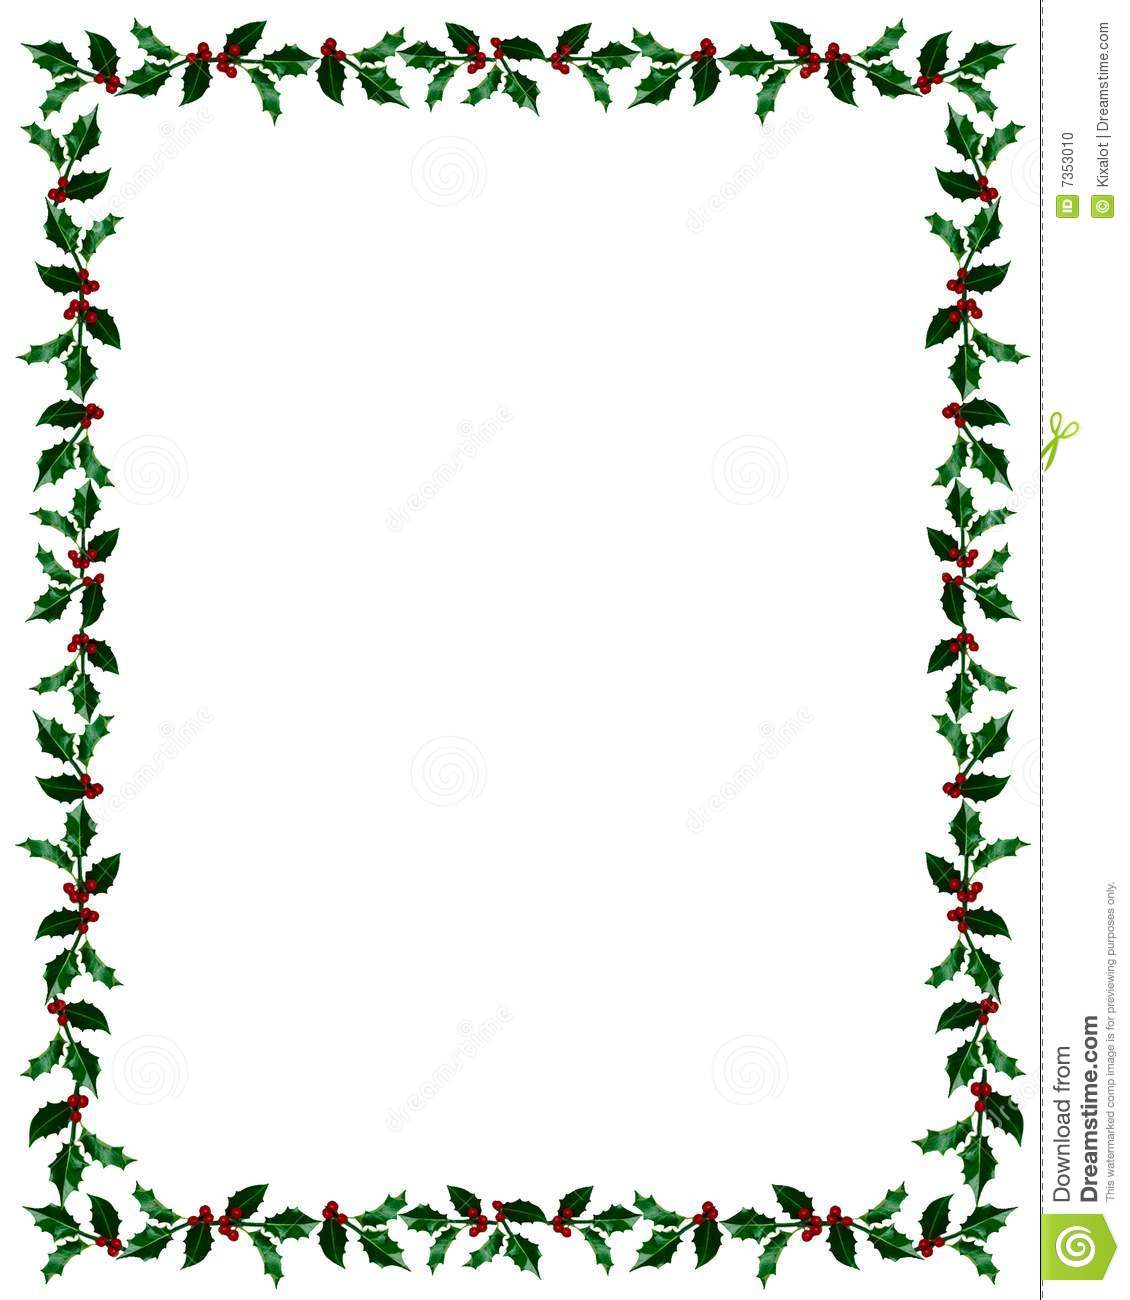 Santa and christmas tree coloring page - Holiday Border Suitable For Christmas Messages And Cards Featuring